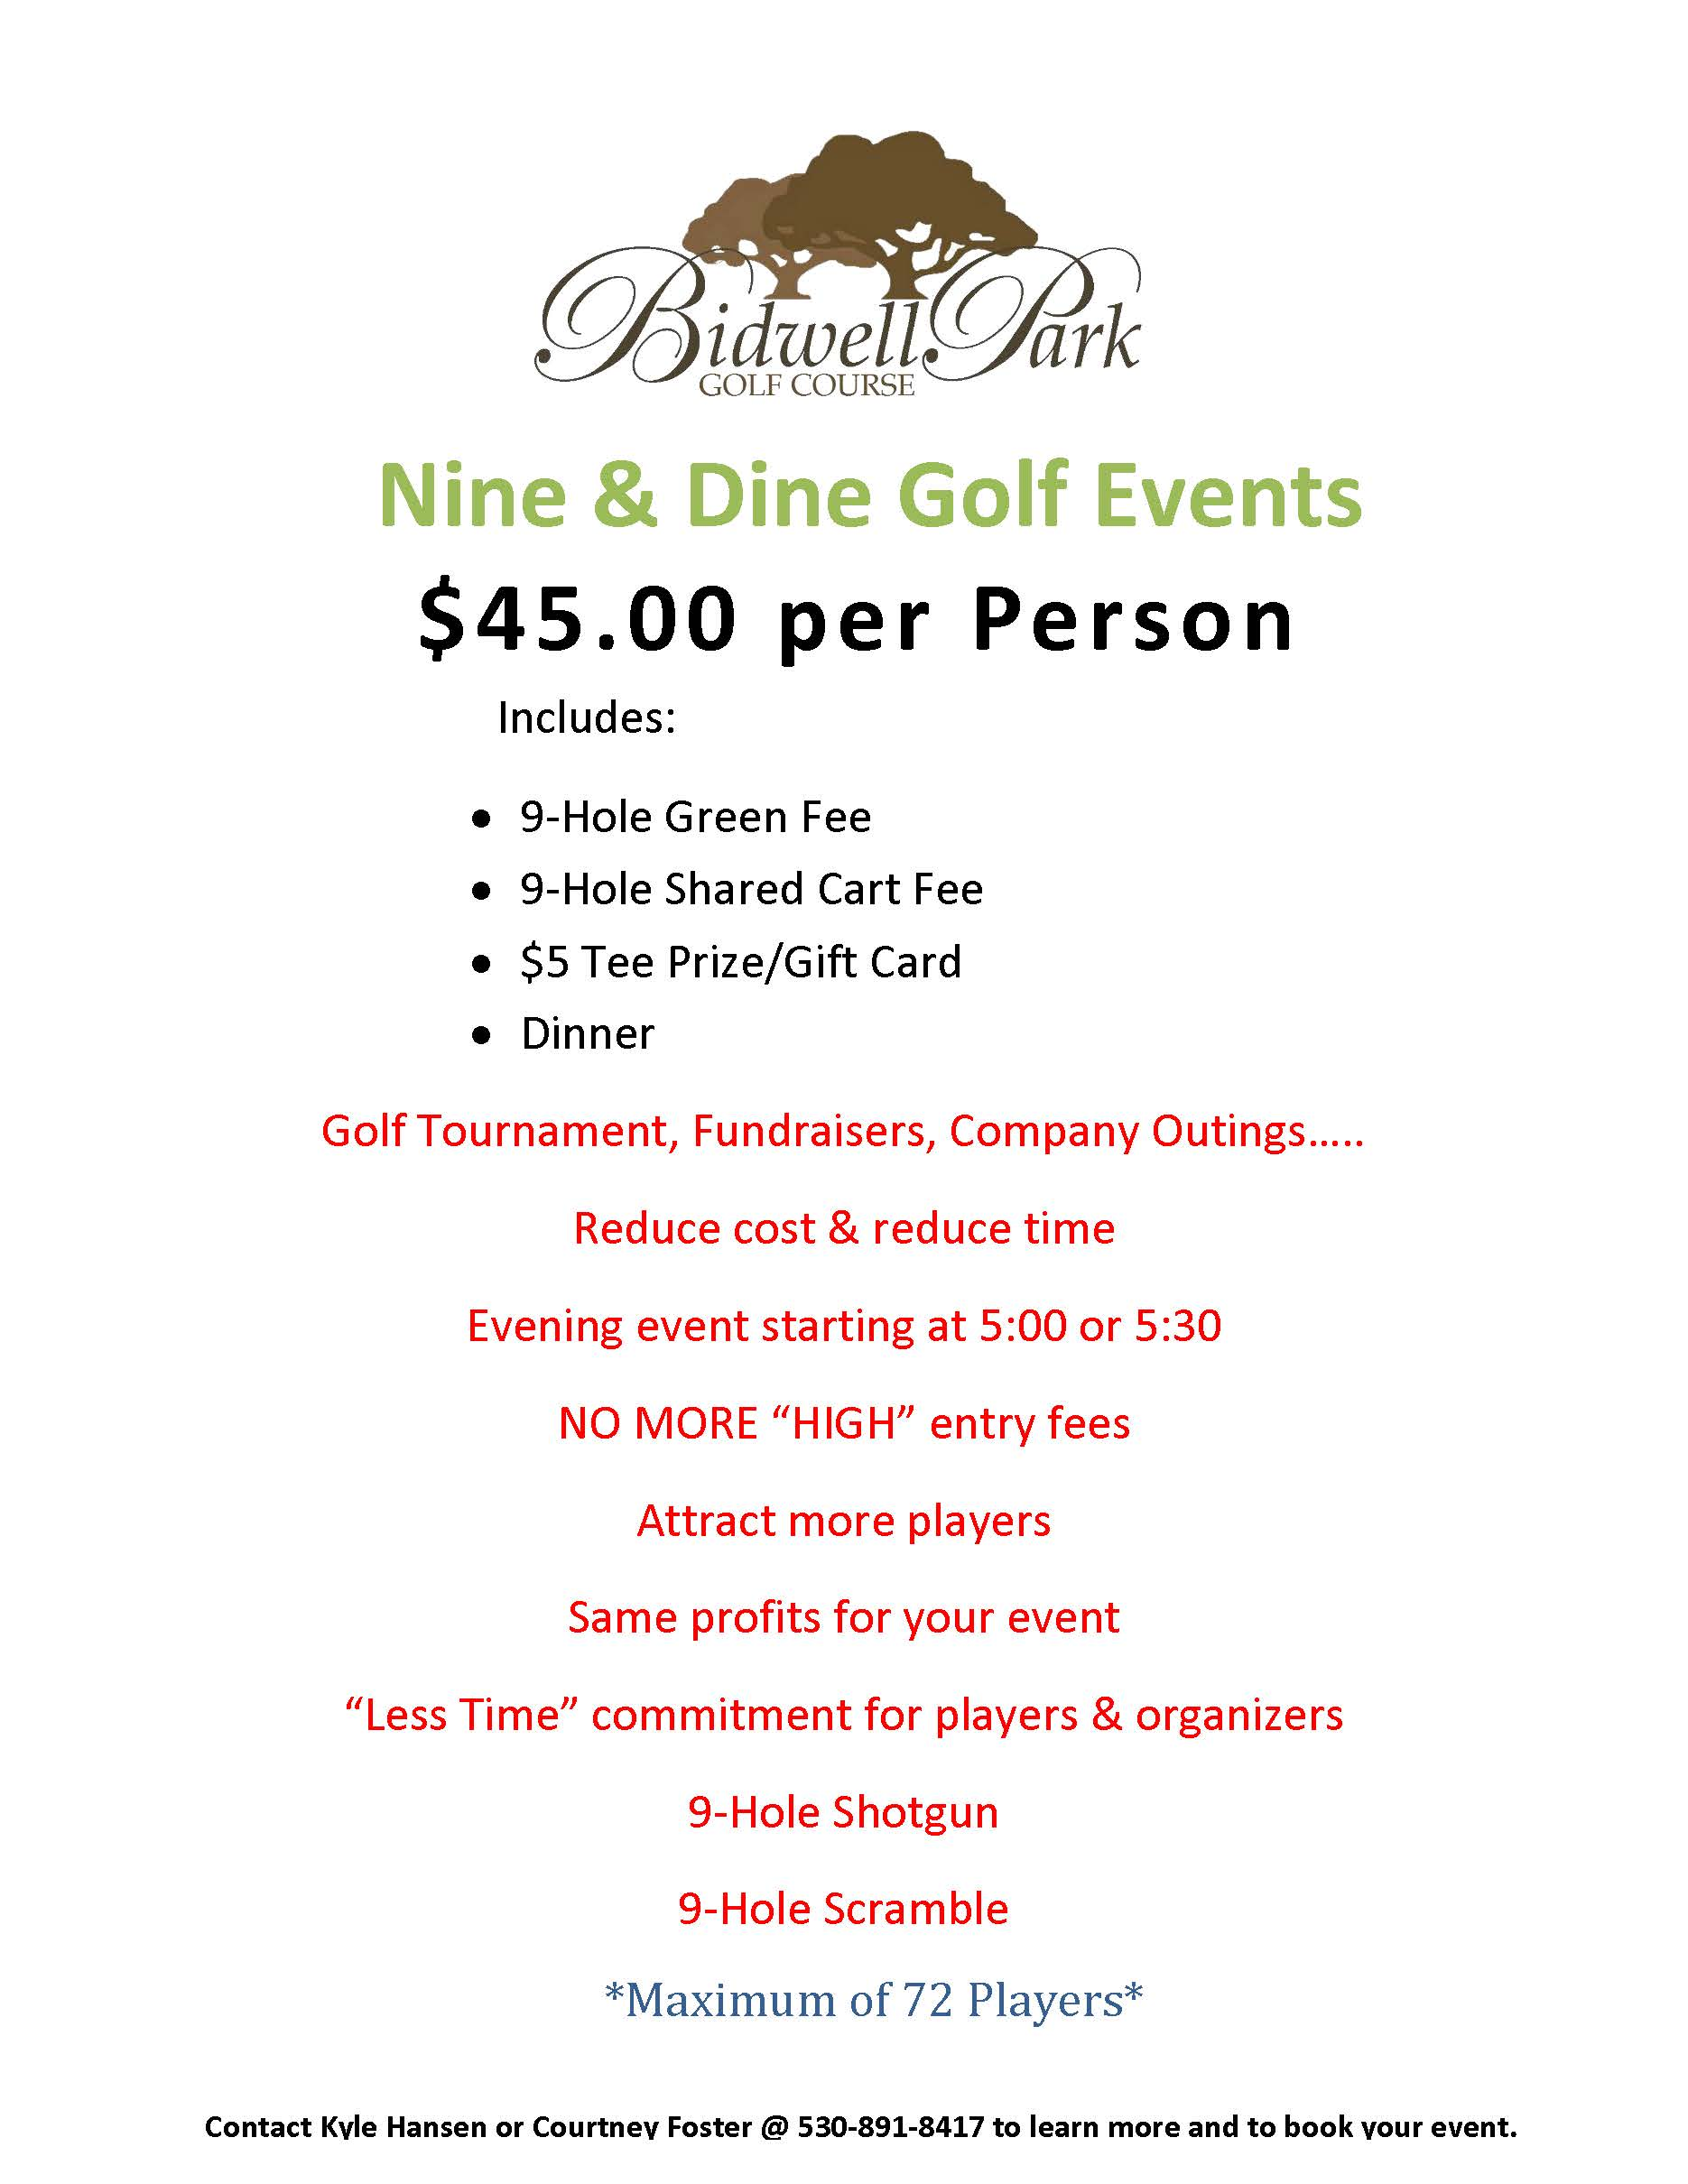 9 Hole Scramble Events 1